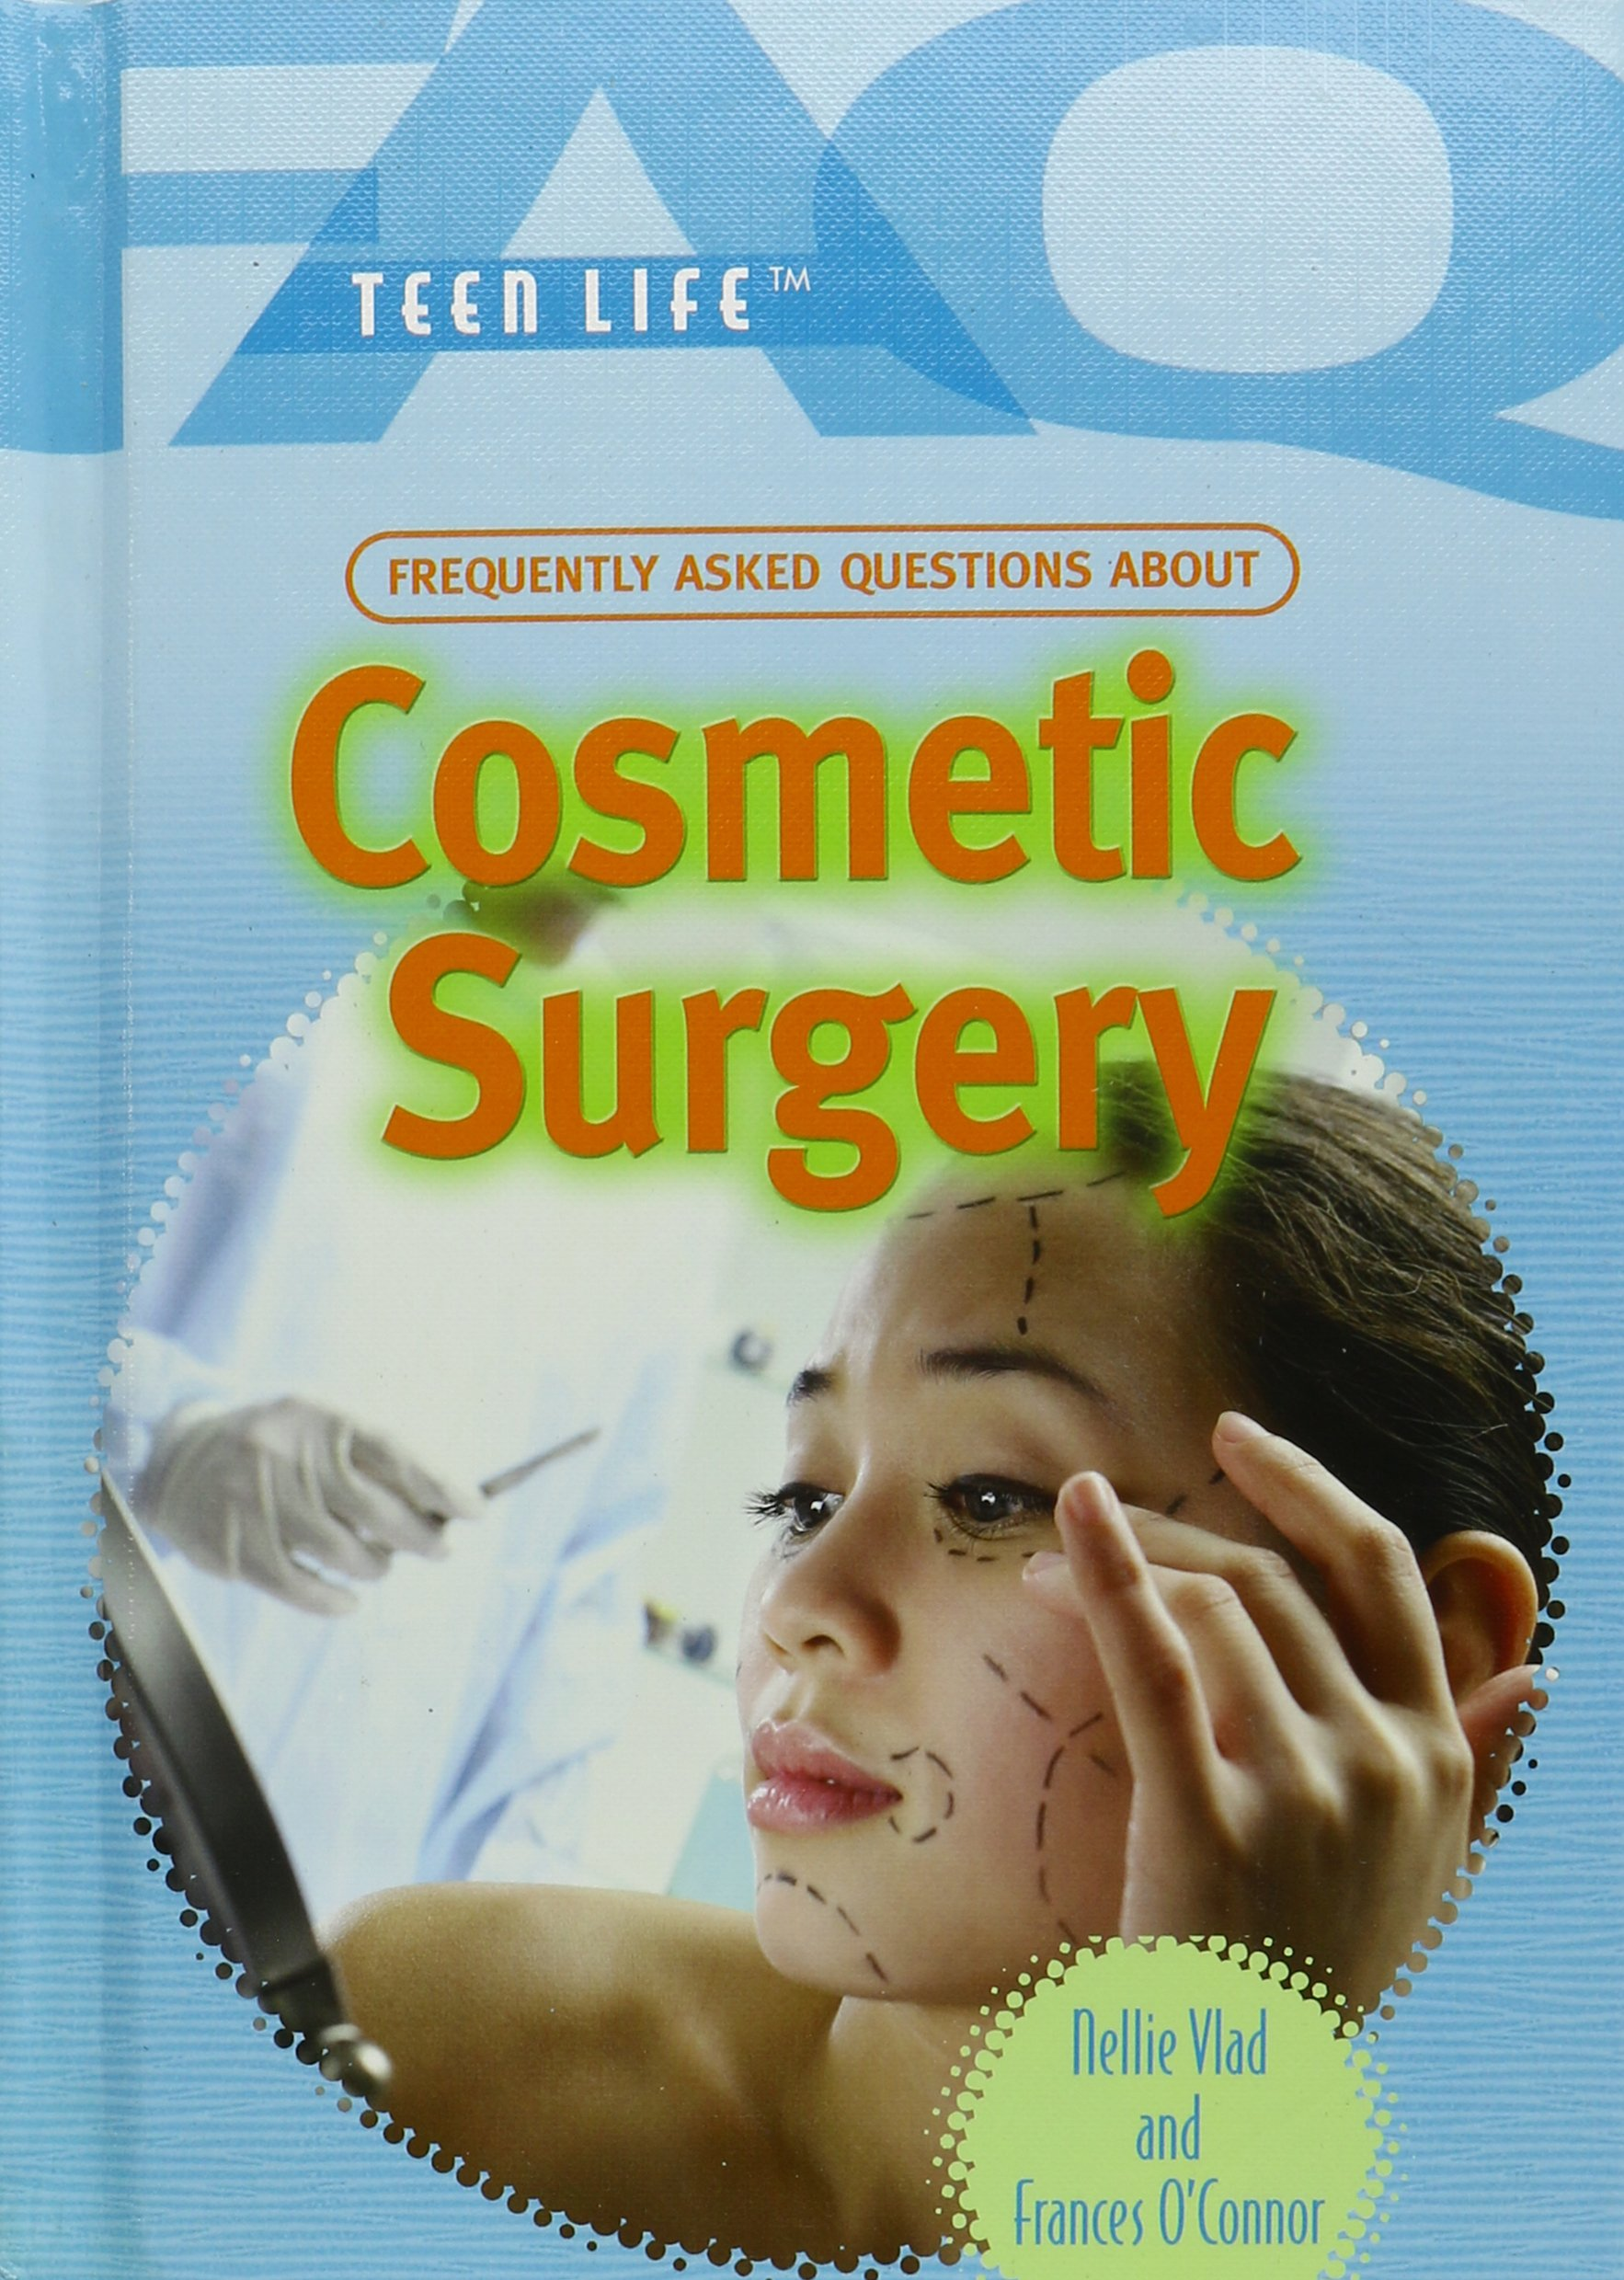 Download Frequently Asked Questions About Cosmetic Surgery (FAQ: Teen Life) PDF